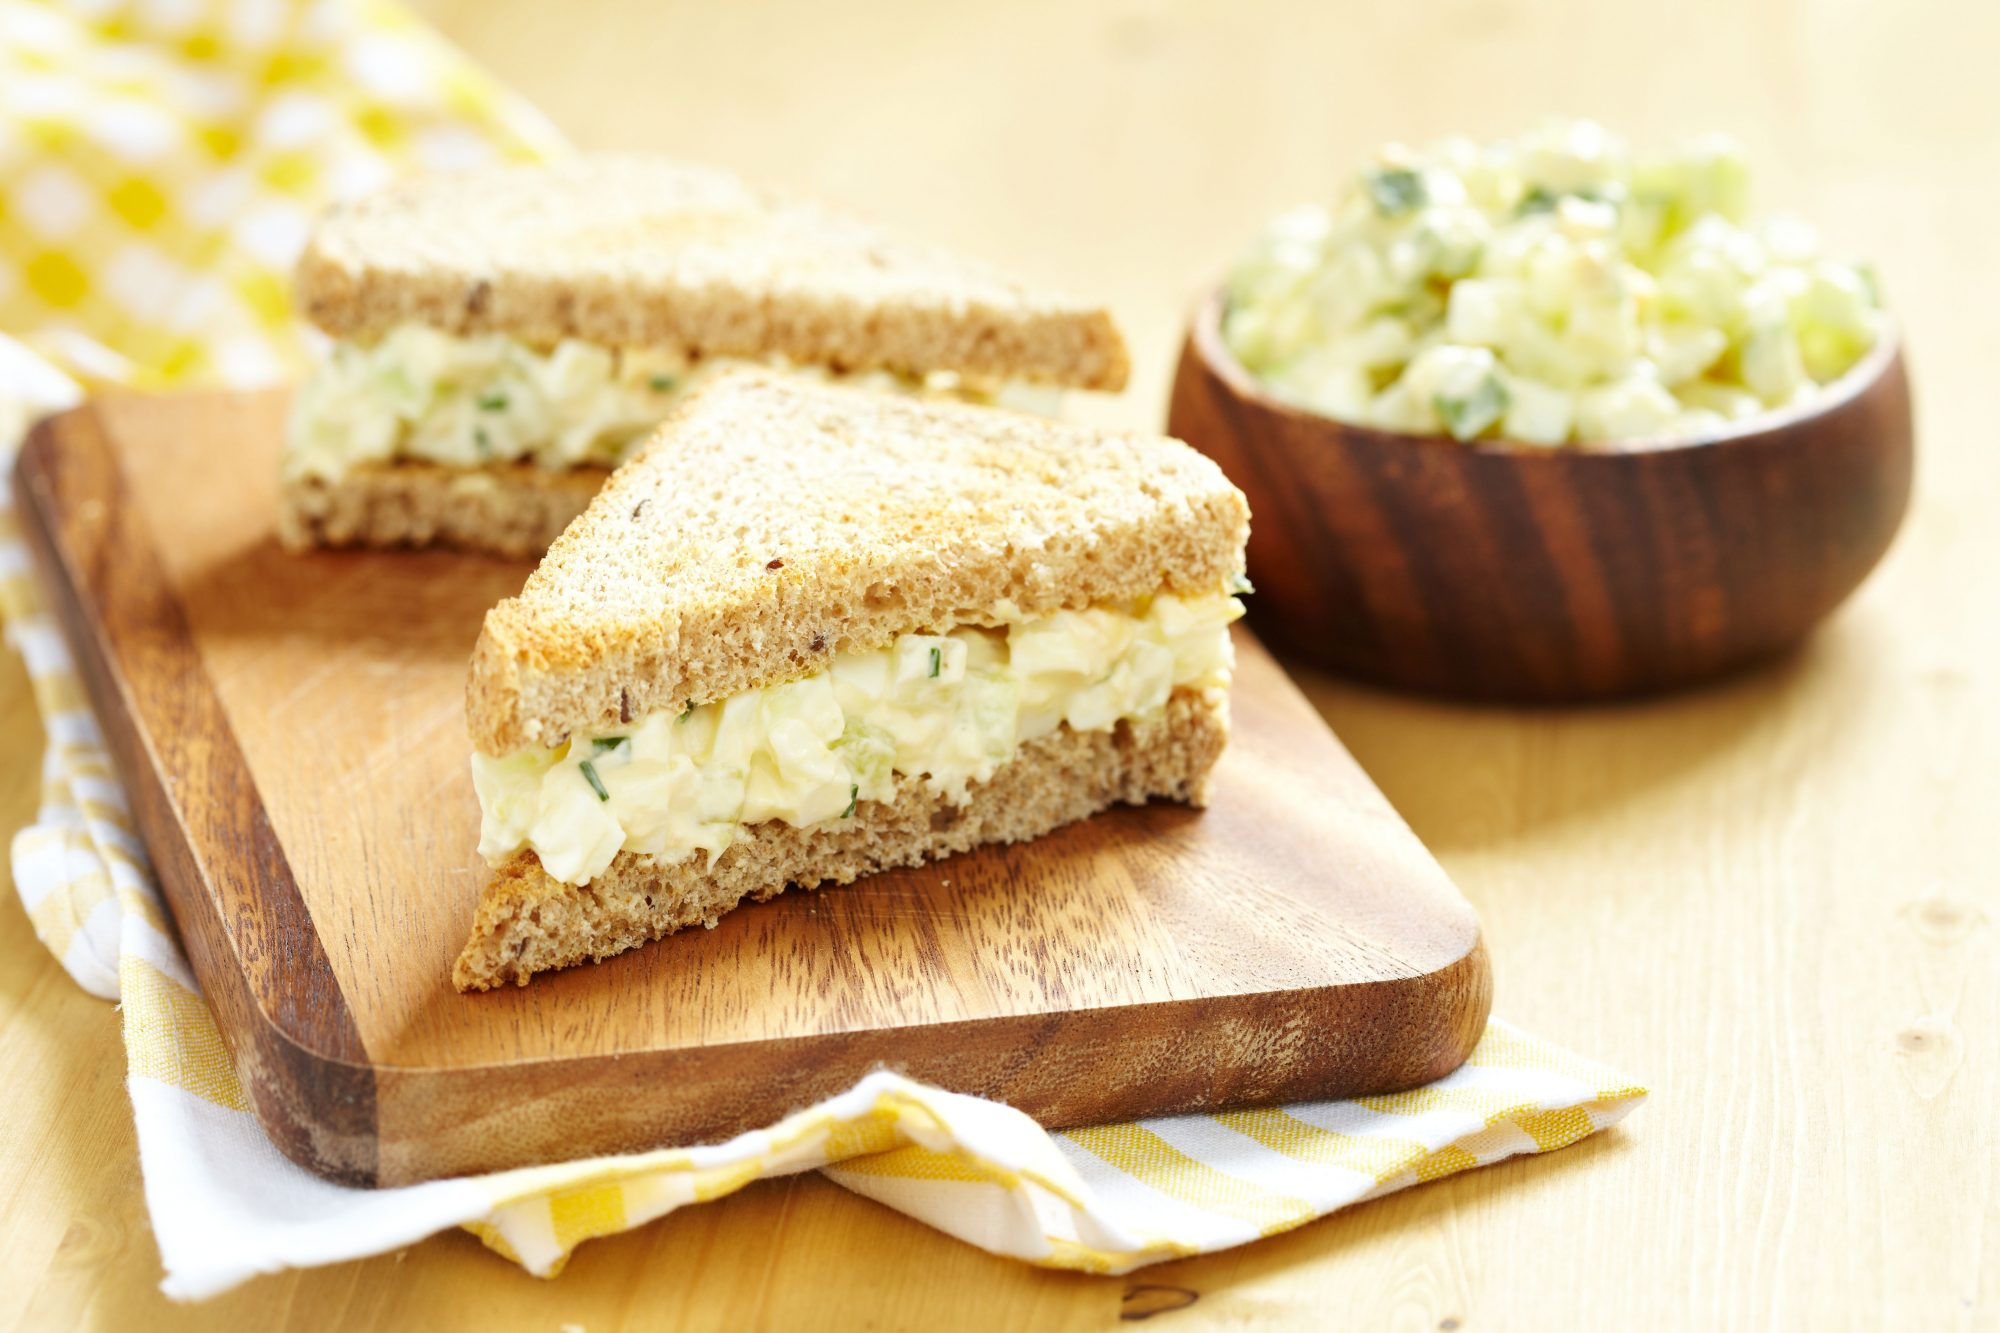 The Unexpected Tool You Need For Making The Creamiest Egg Salad